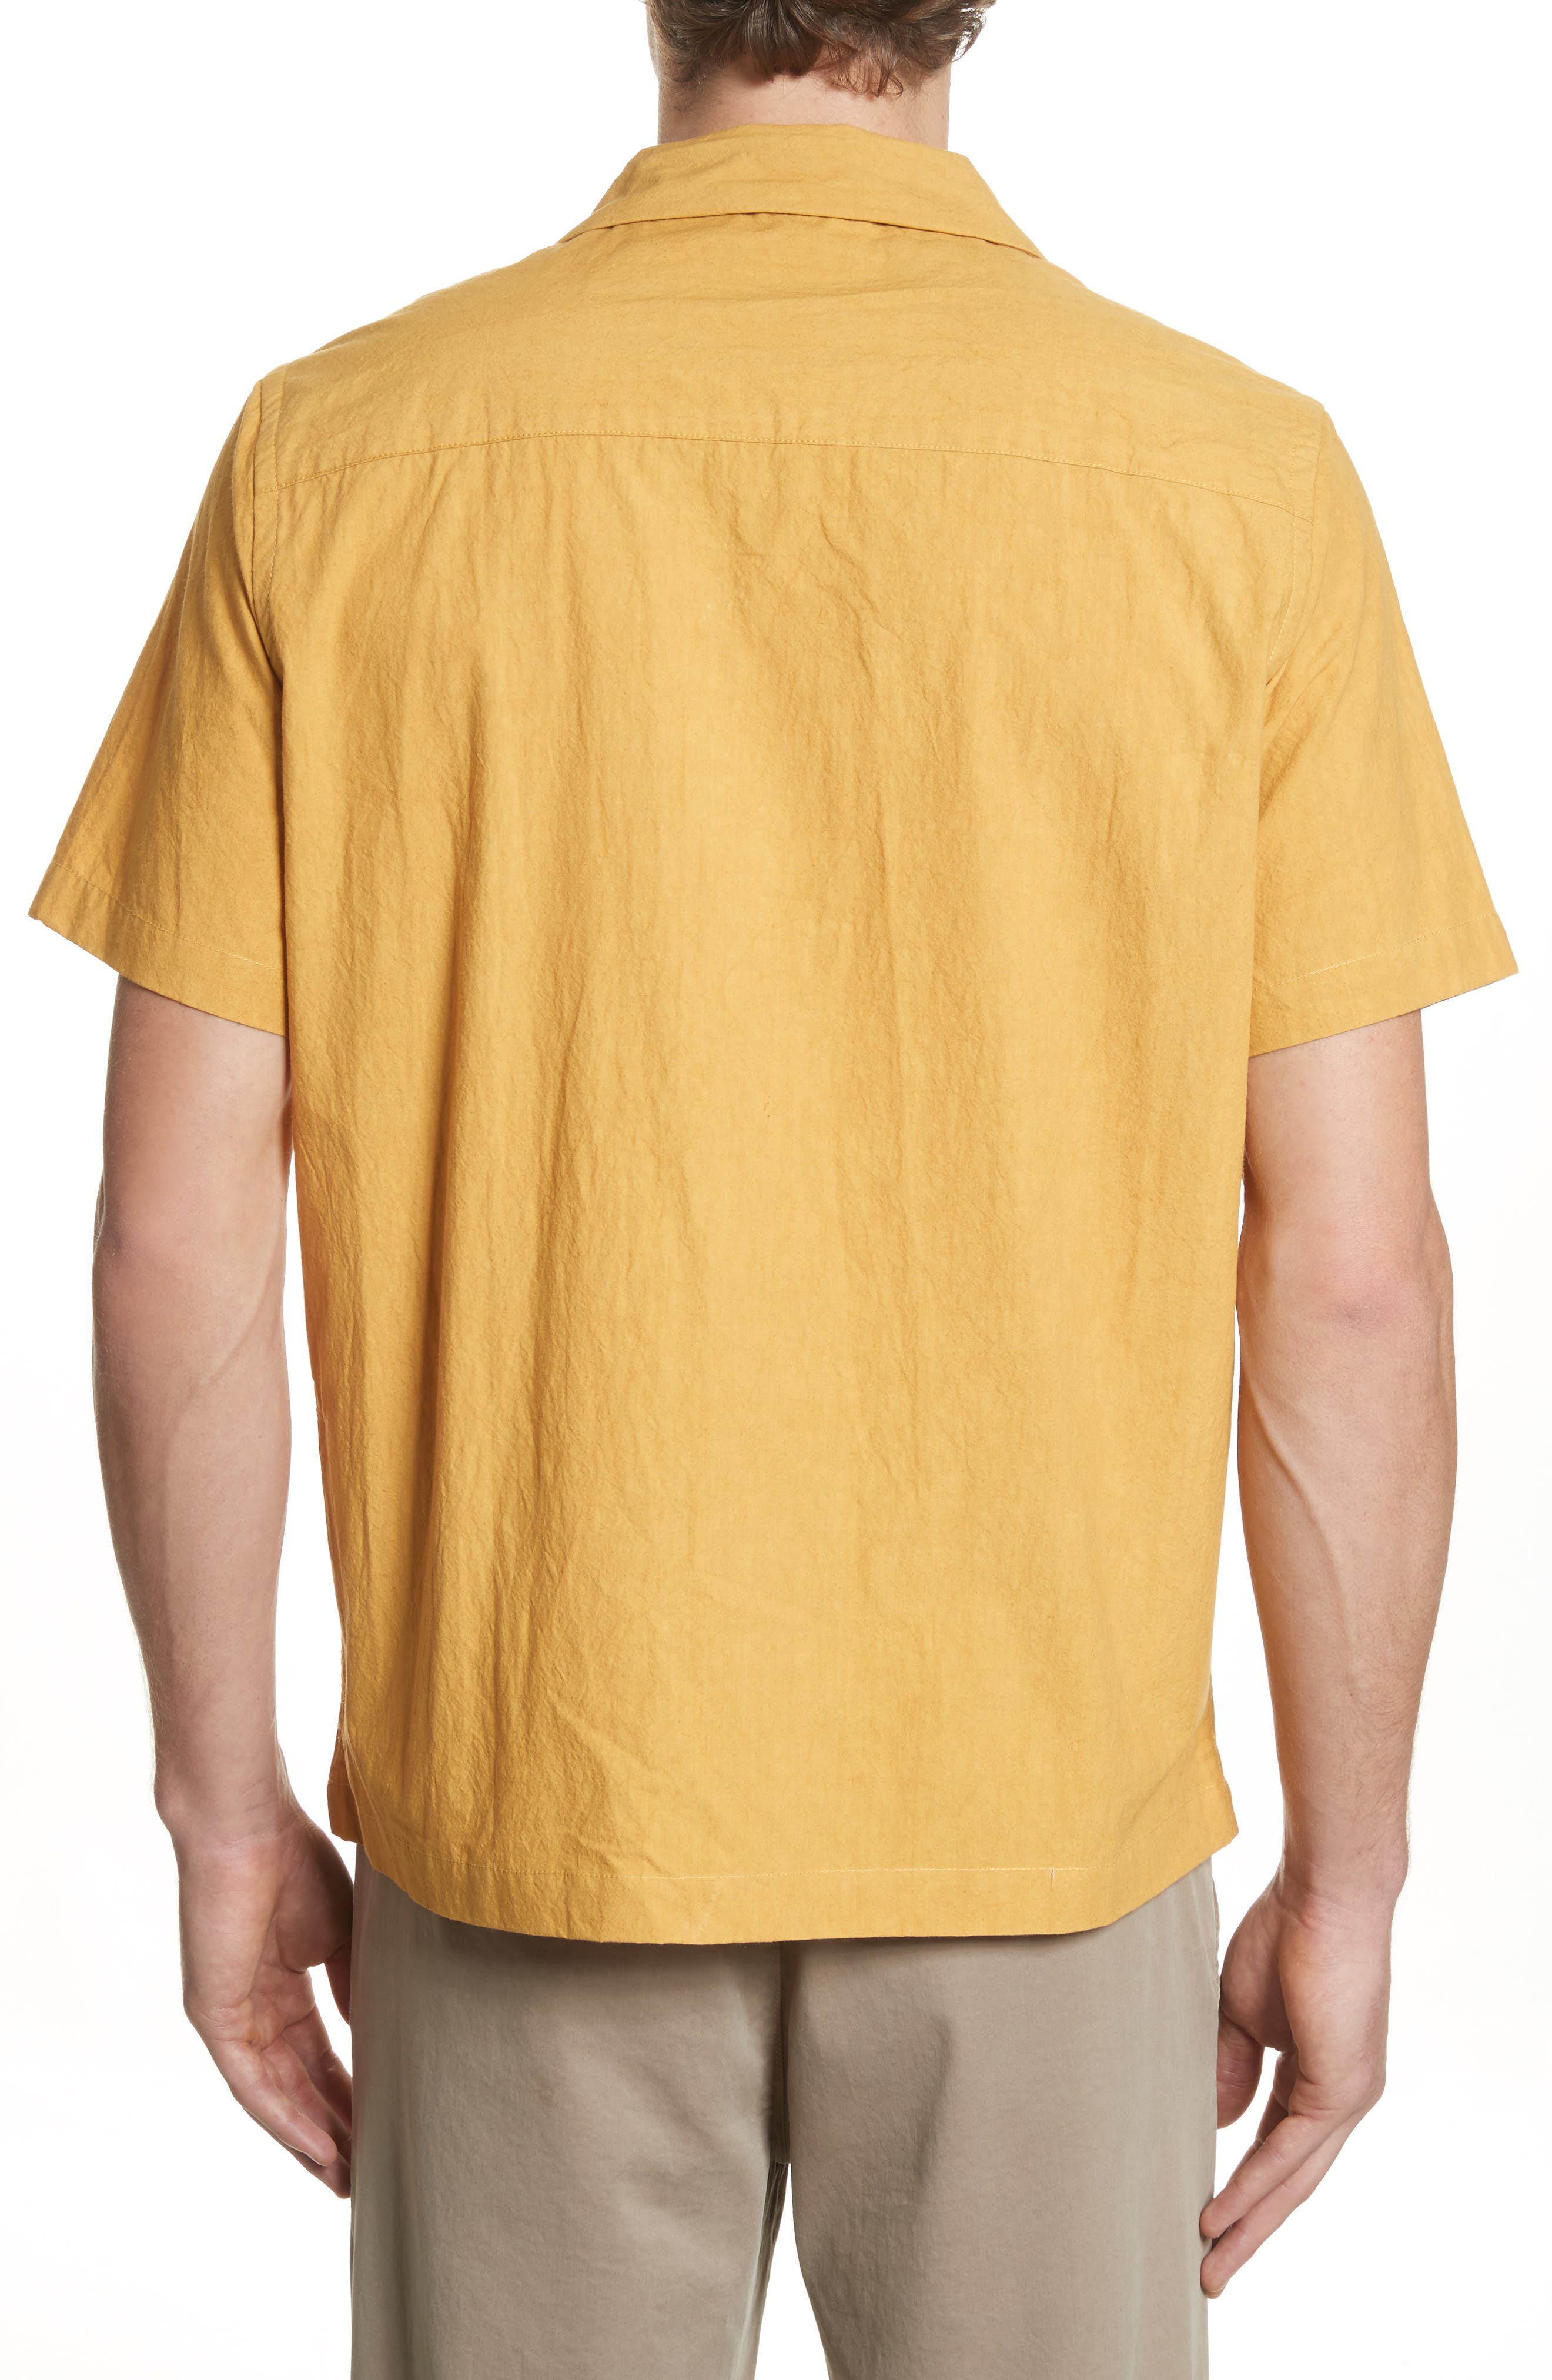 Canty Woven Camp Shirt,                             Alternate thumbnail 3, color,                             Dusty Amber